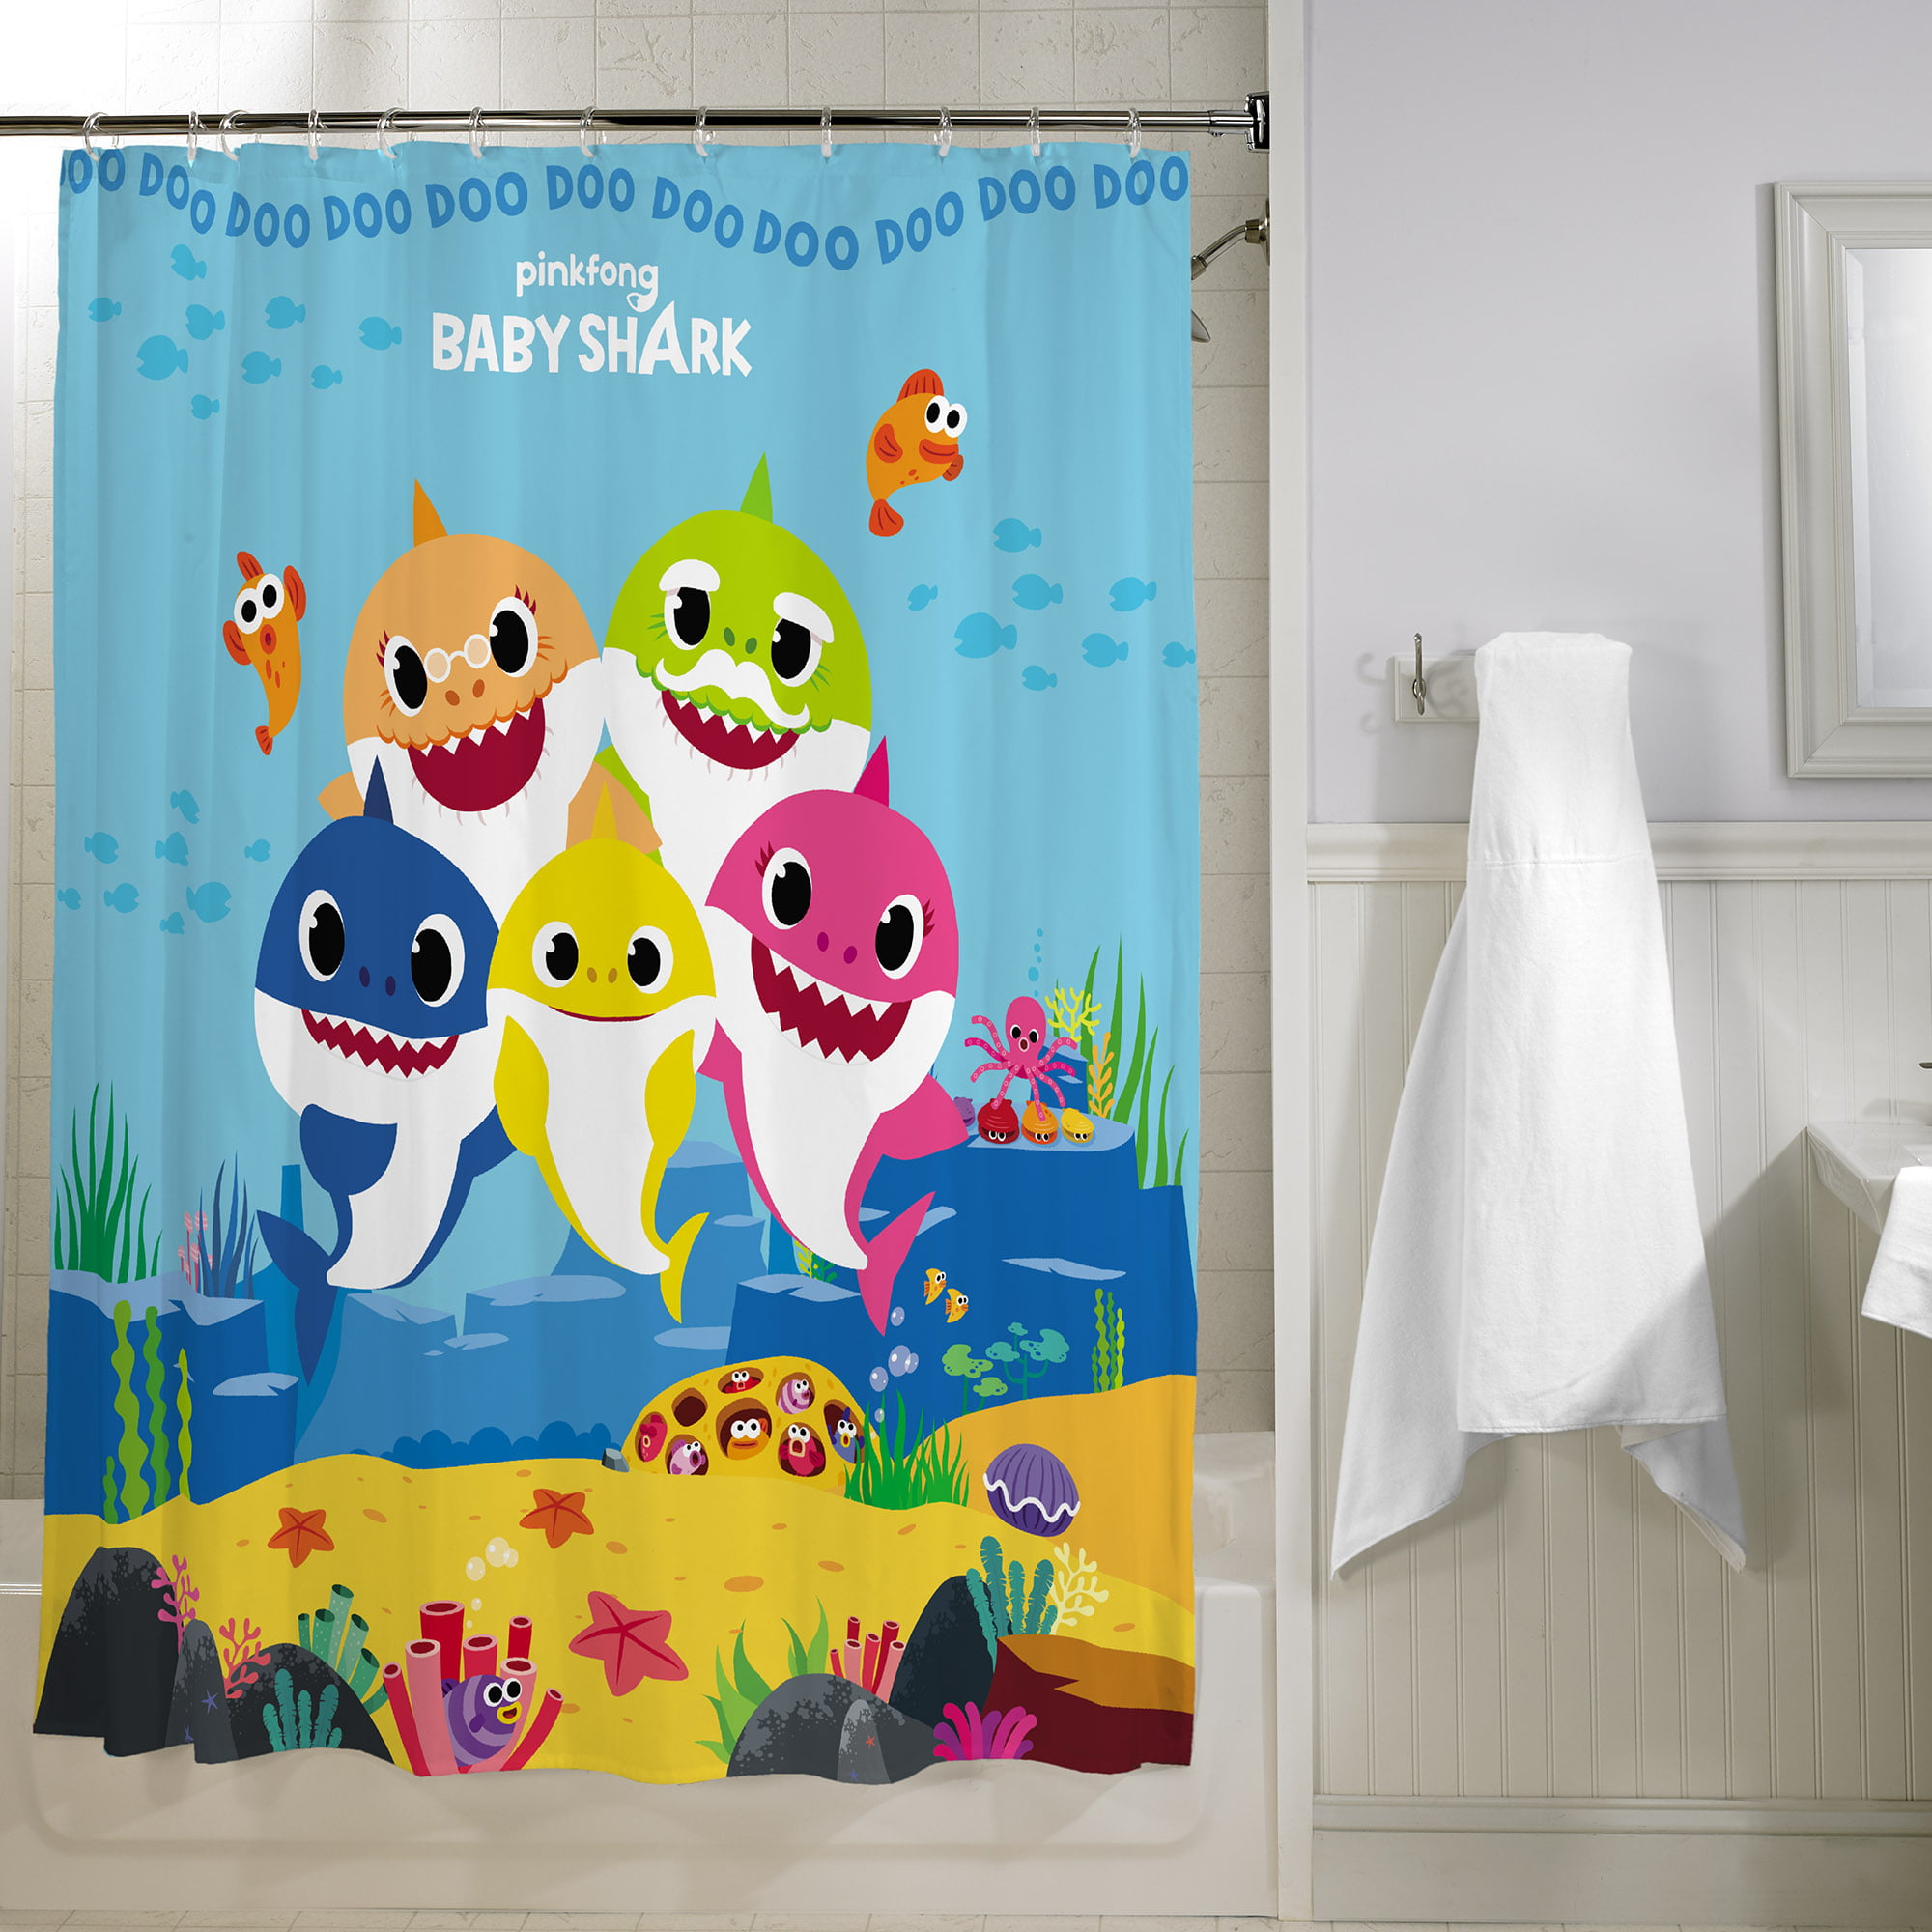 Baby Shark Kids Bathroom Decorative